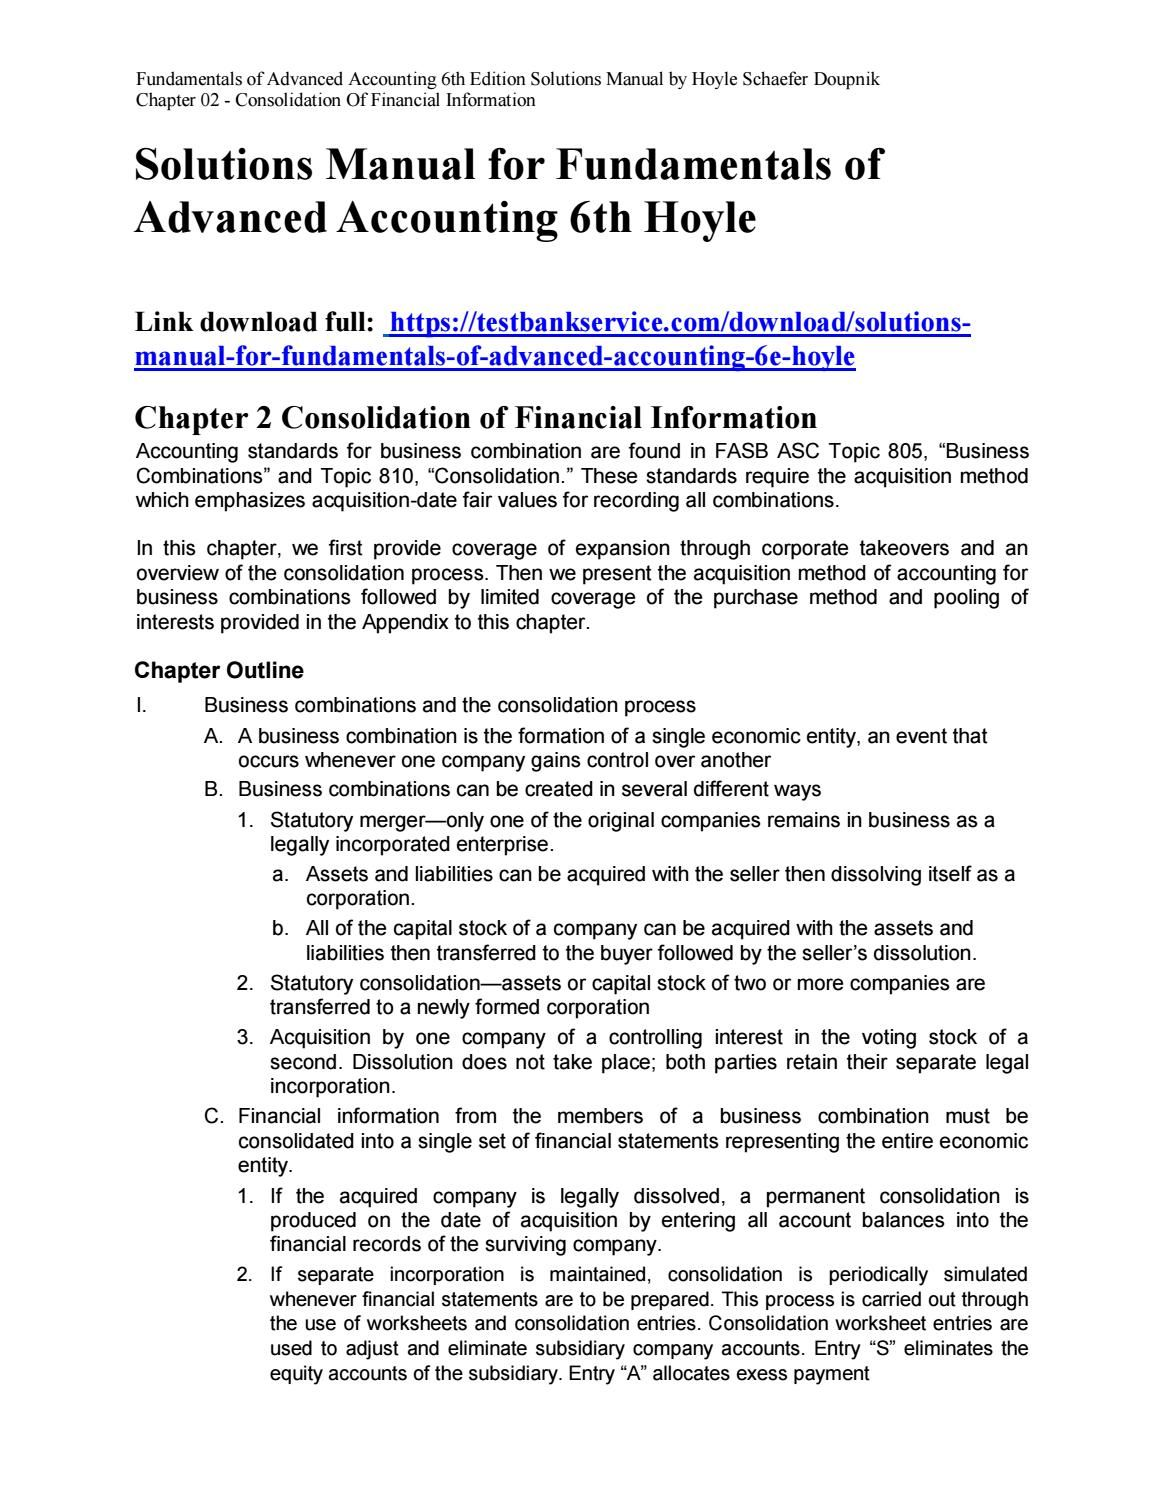 Fundamentals of Advanced Accounting 6th Solutions Hoyle